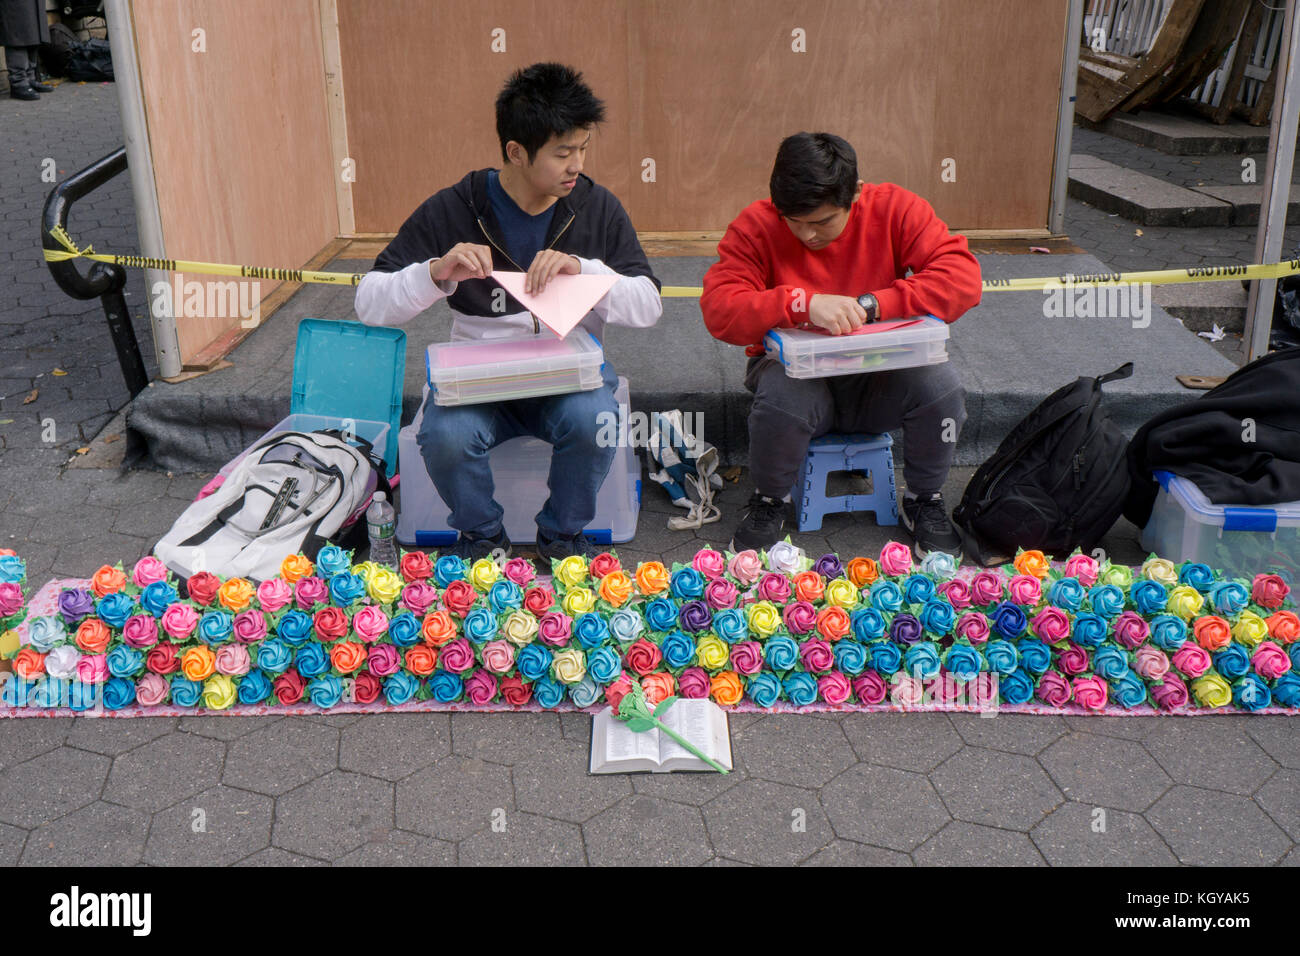 A Chinese American young man makes colorful origami flowers and instructs his friend in origami. At Union Square - Stock Image